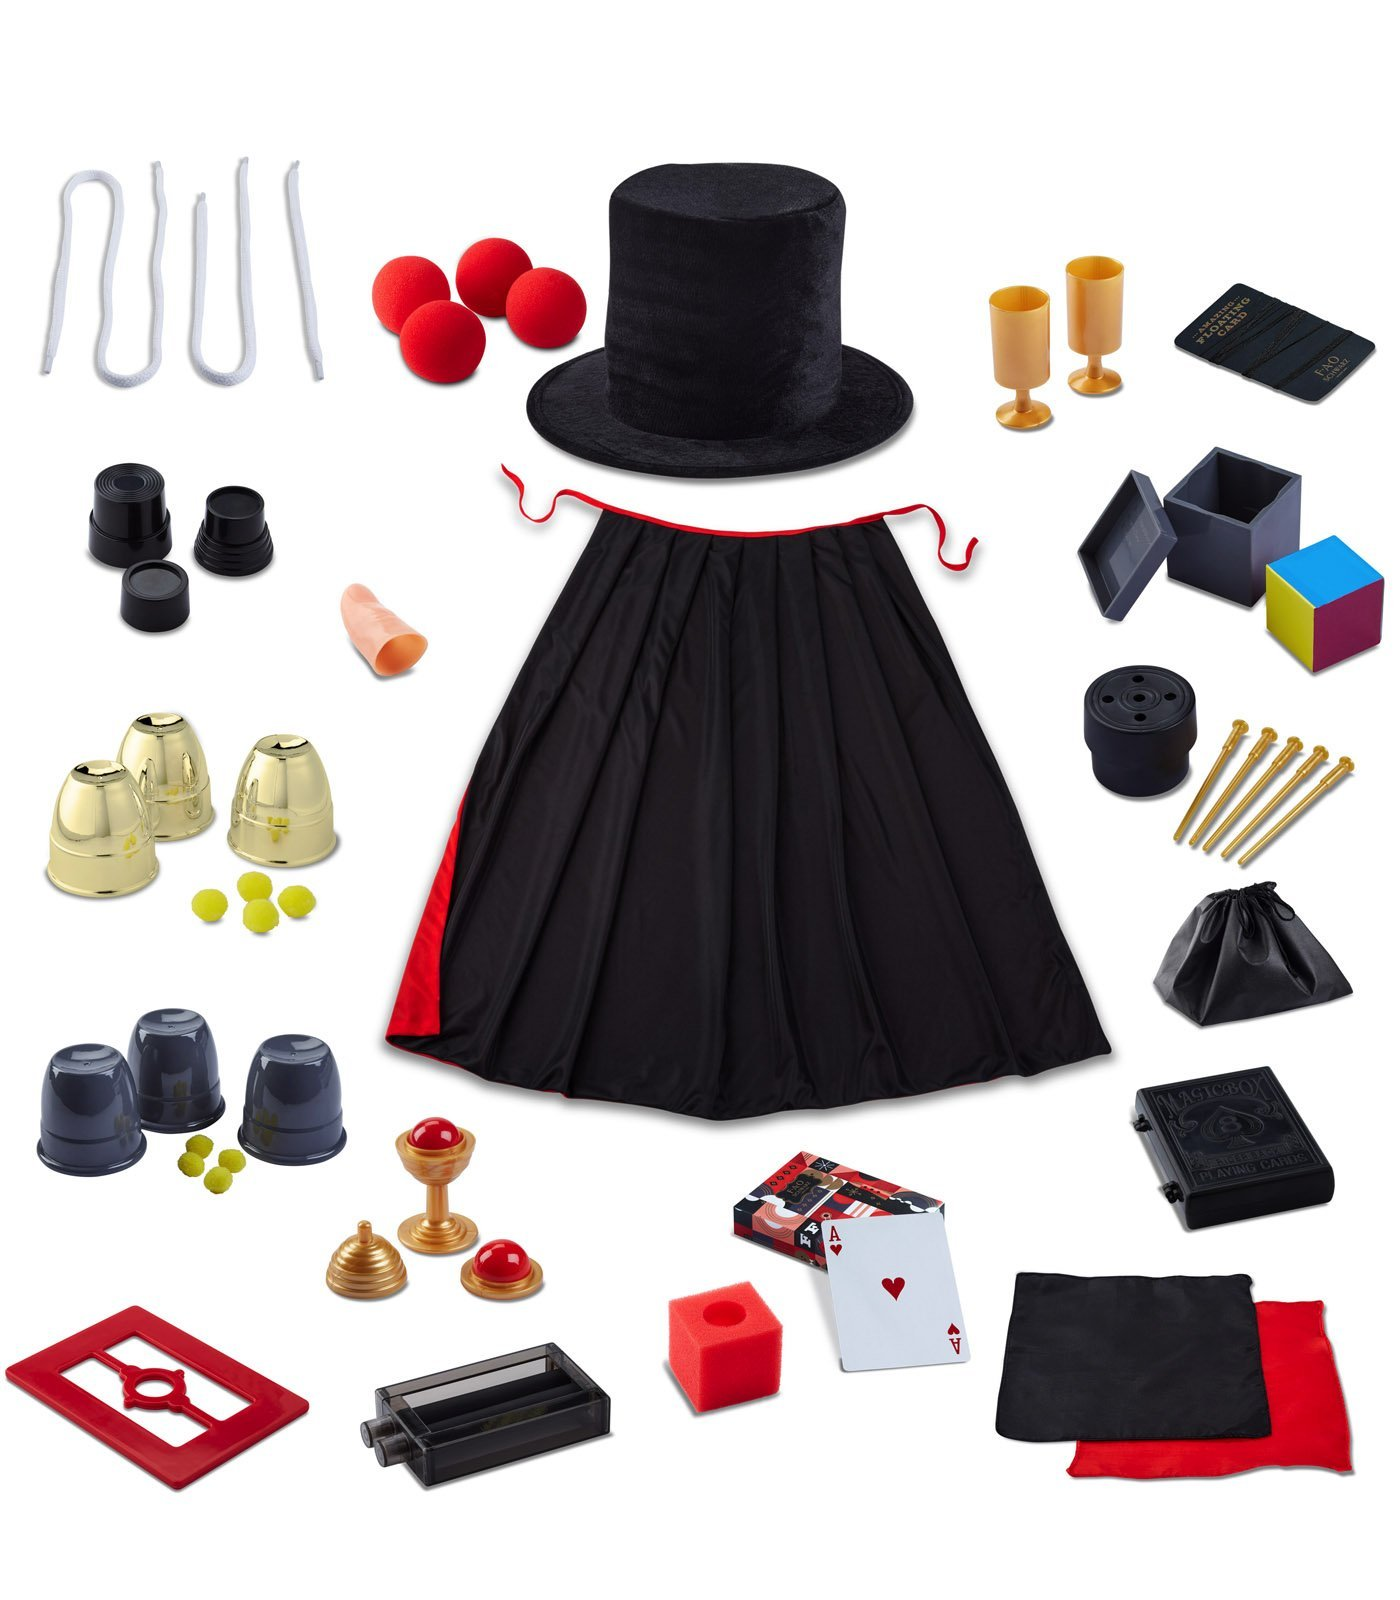 FAO SCHWARZ Premium Magic Trick Set 39 Piece - 300 Trick Magician's Bundle For Children - Includes Card Decks, Coin Tricks, Handkerchiefs, Top Hat, Cape, & More - Gift Idea for Kids Ages 8+ by FAO Schwarz